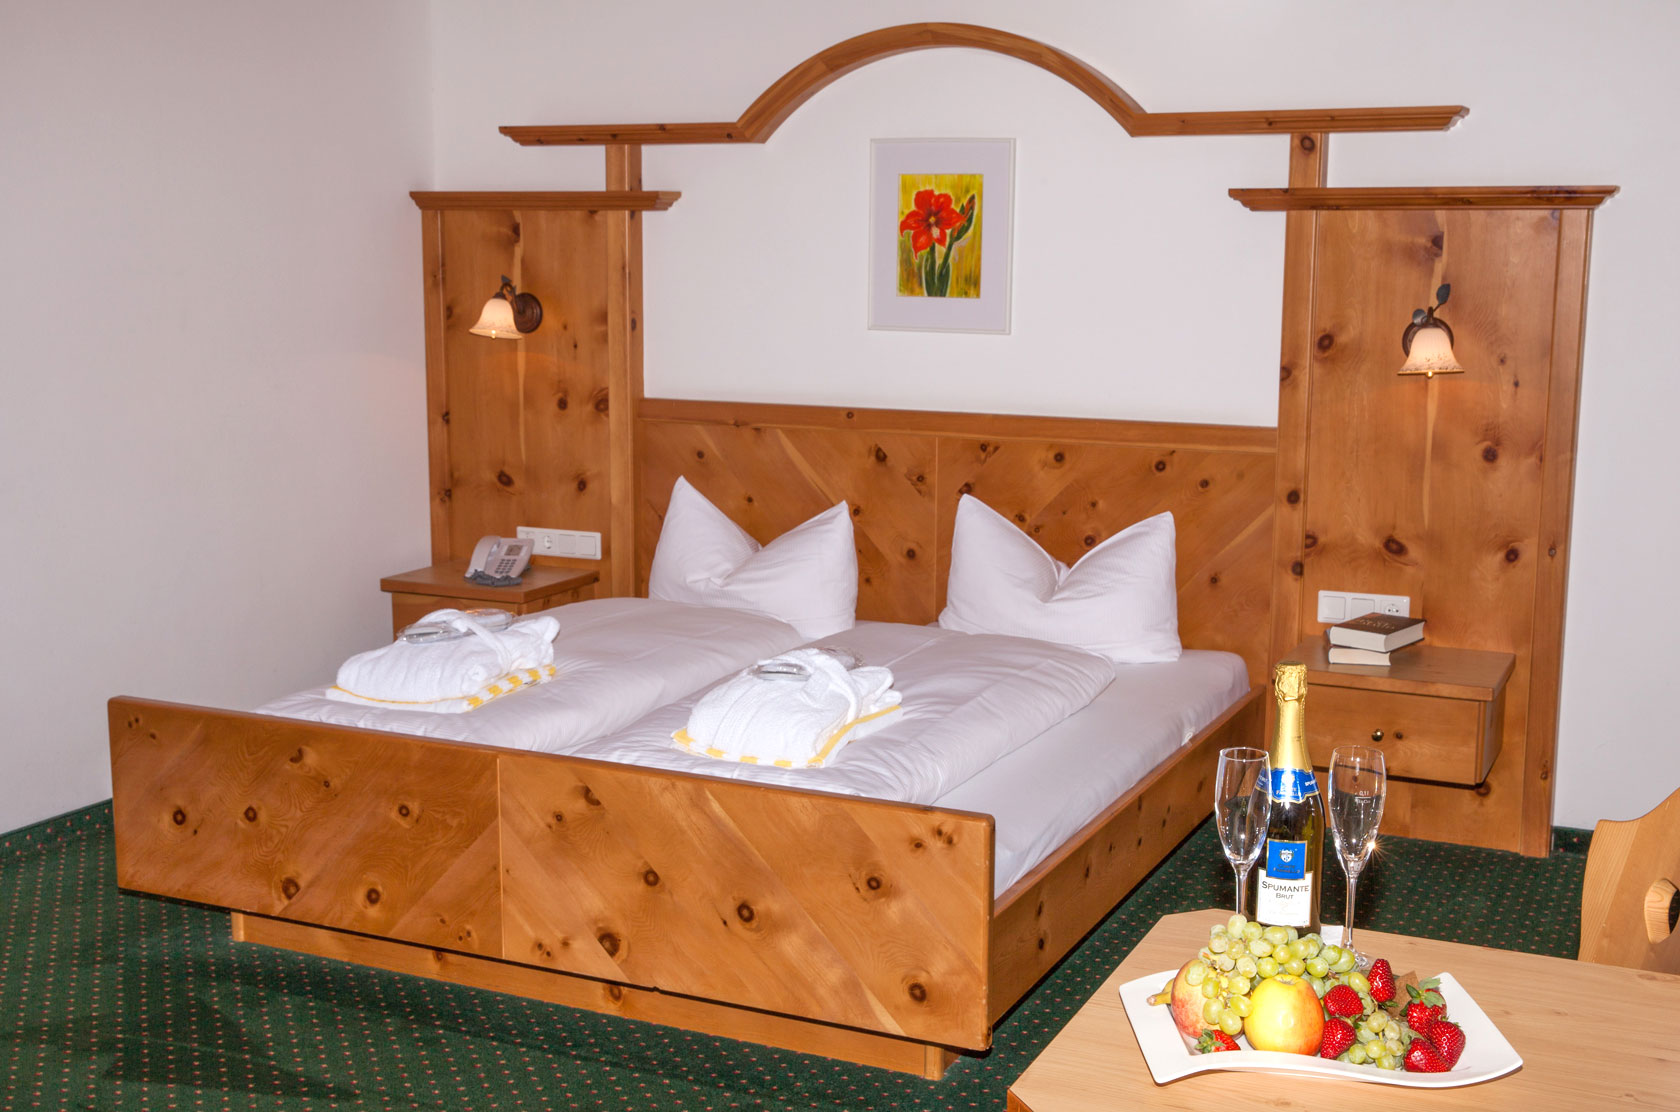 Double bed in the category pine